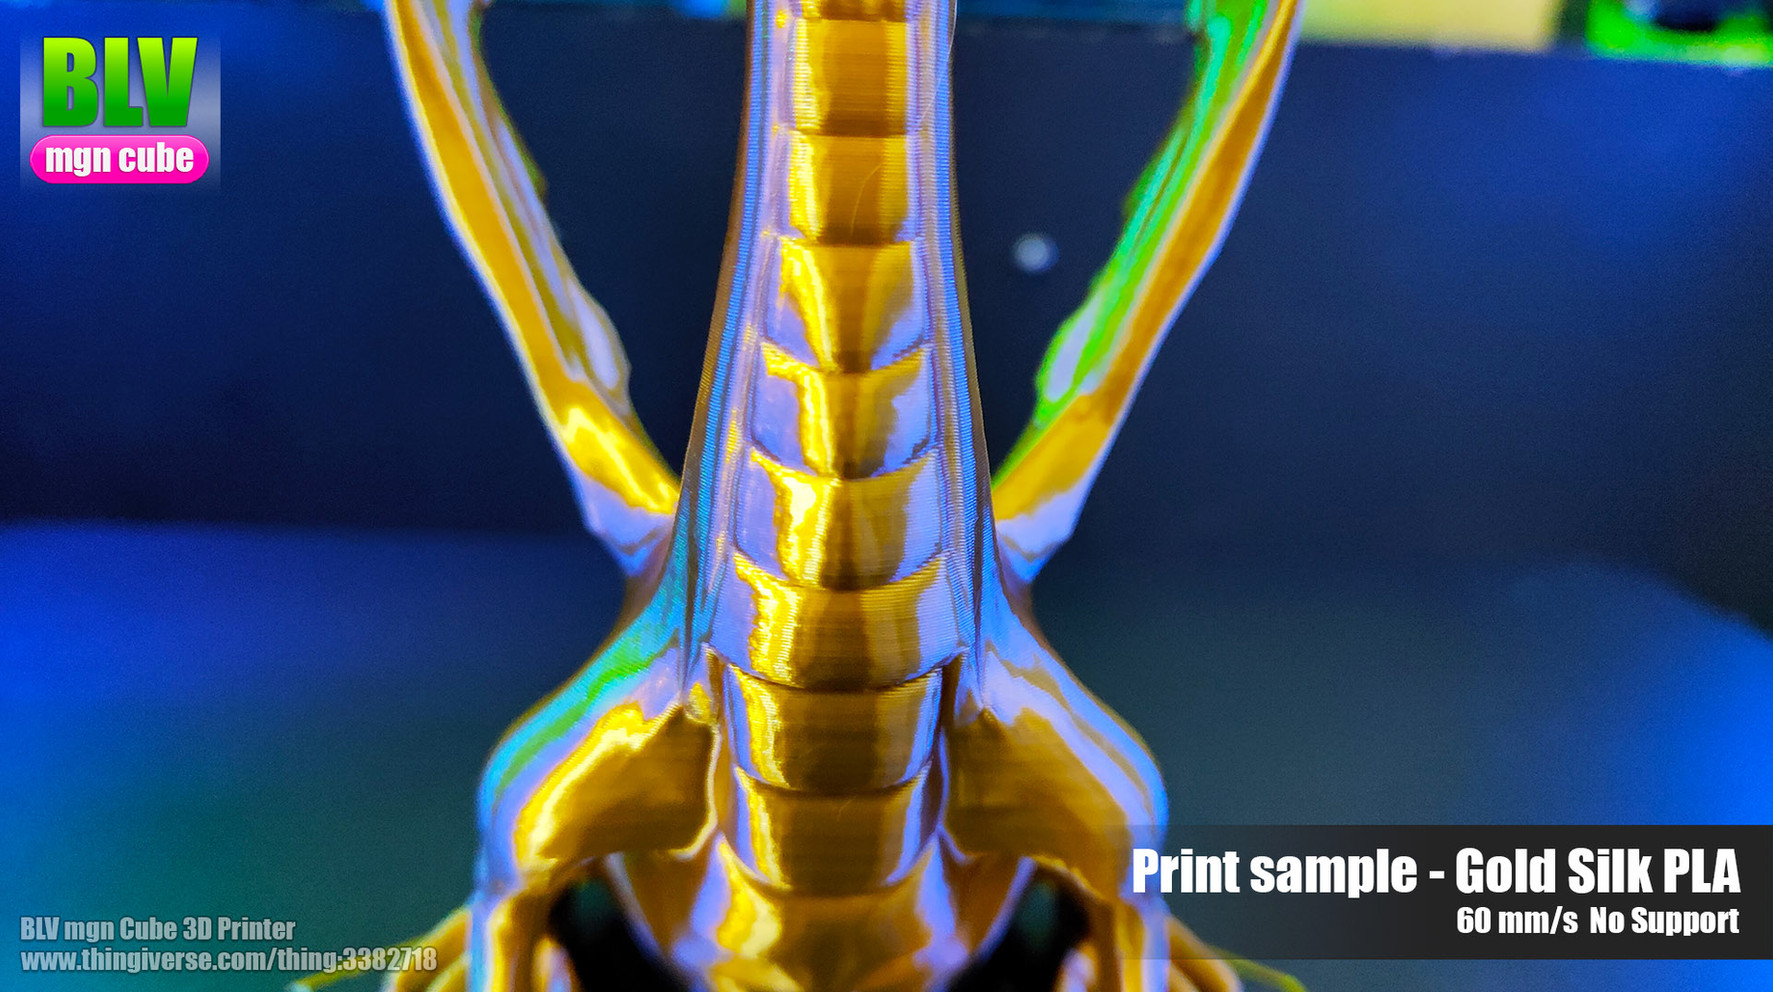 blv mgn cube by ben levi - print sample